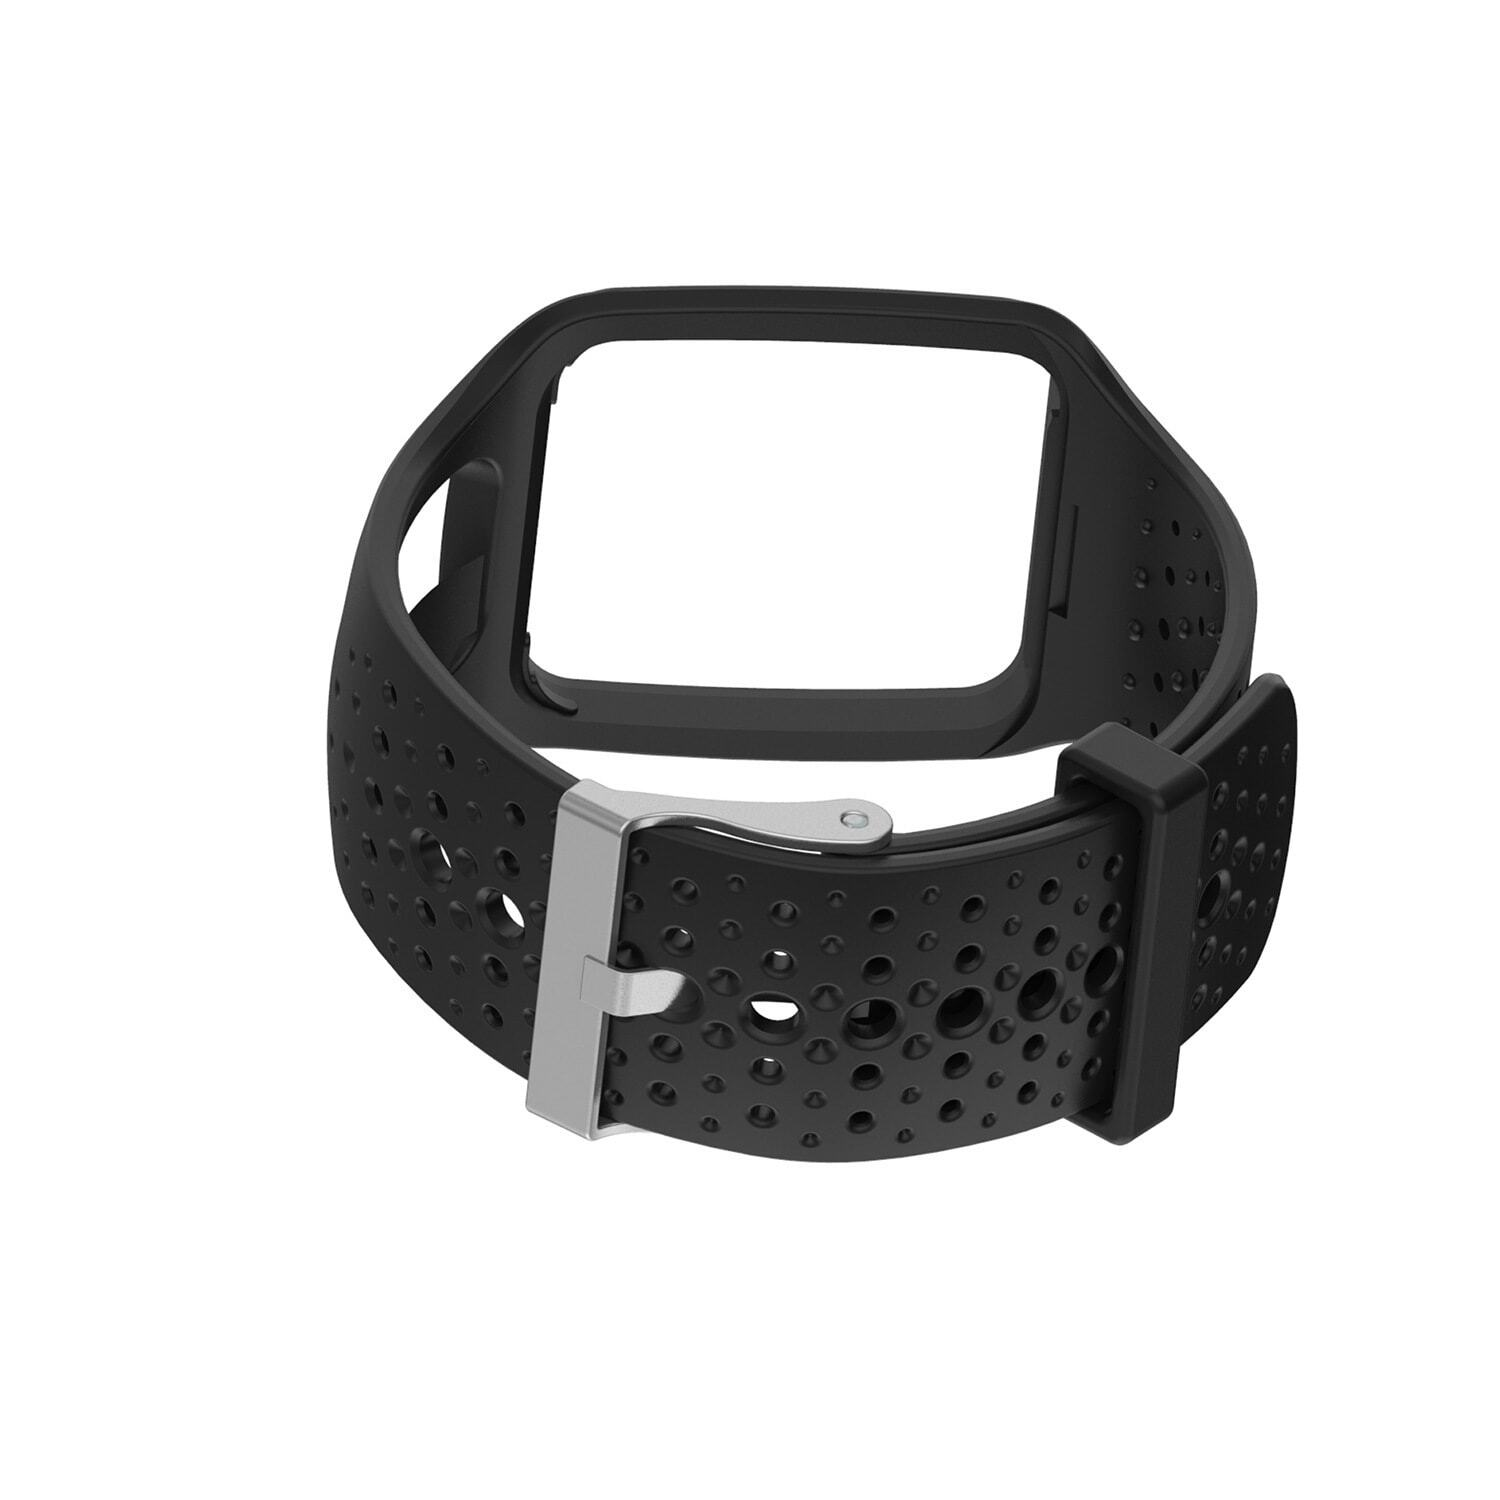 Dây đeo đồng hồ Tomtom strap silicon (dành cho TomTom Runner / Multisports)